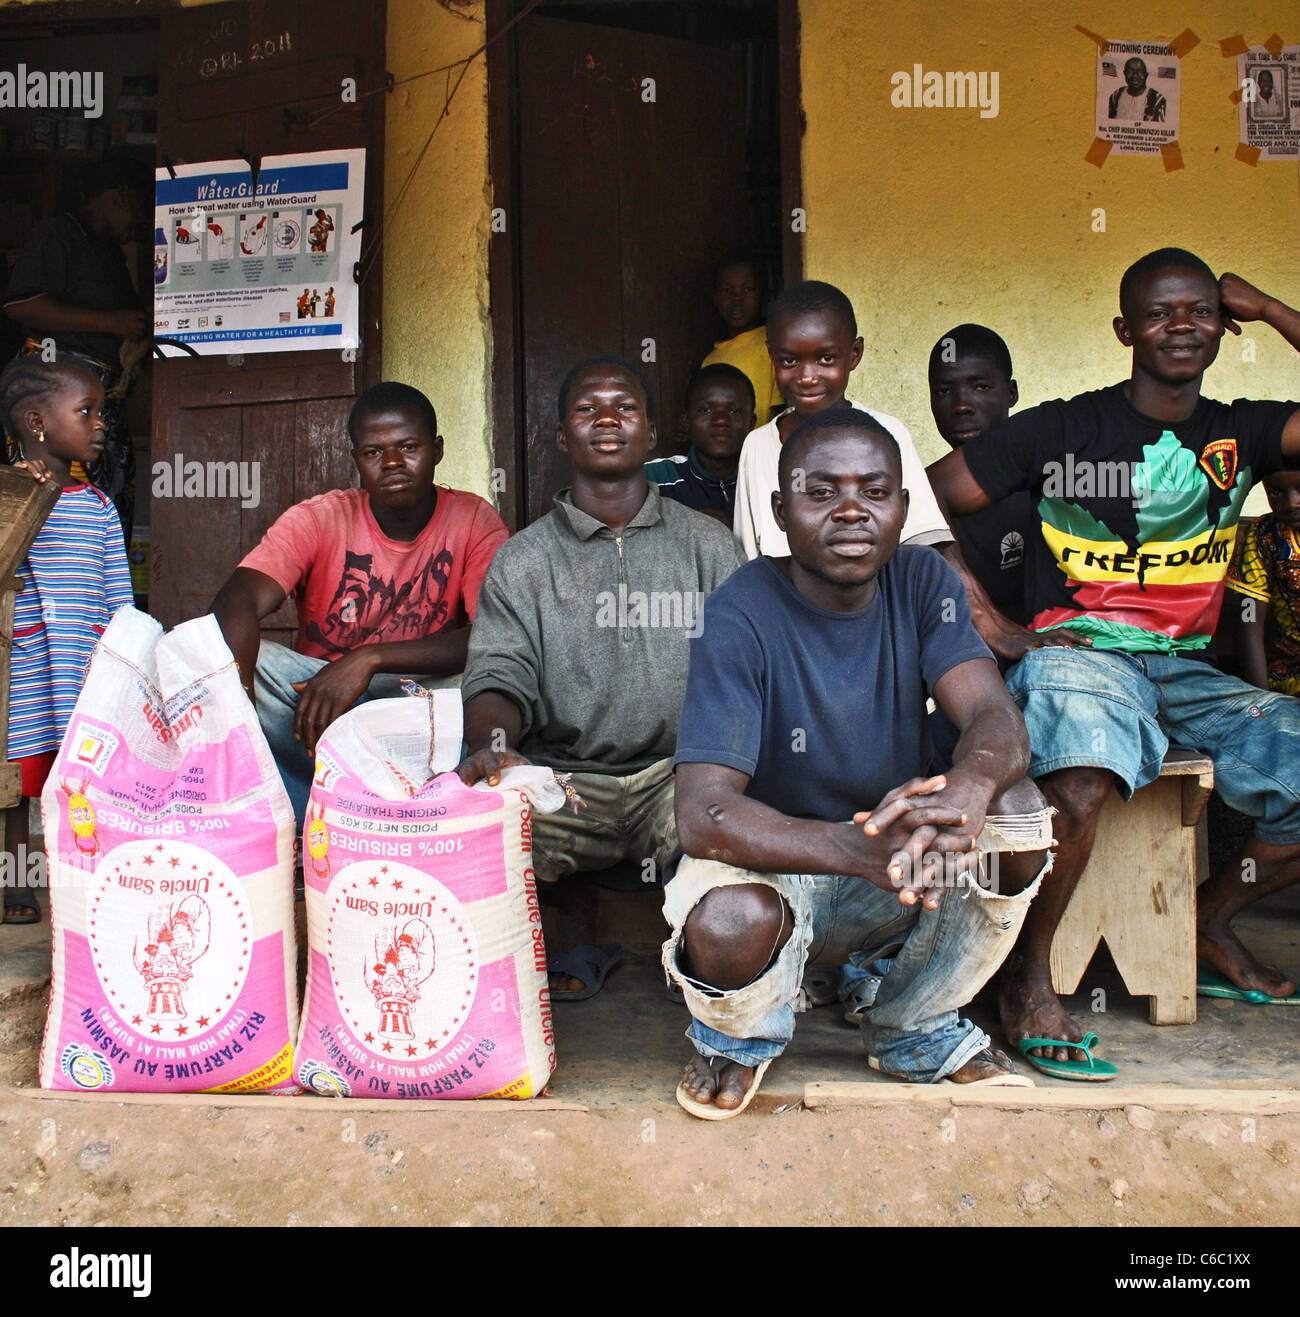 Imported 'Uncle Sam's Rice' in Zorzor, Liberia - Stock Image